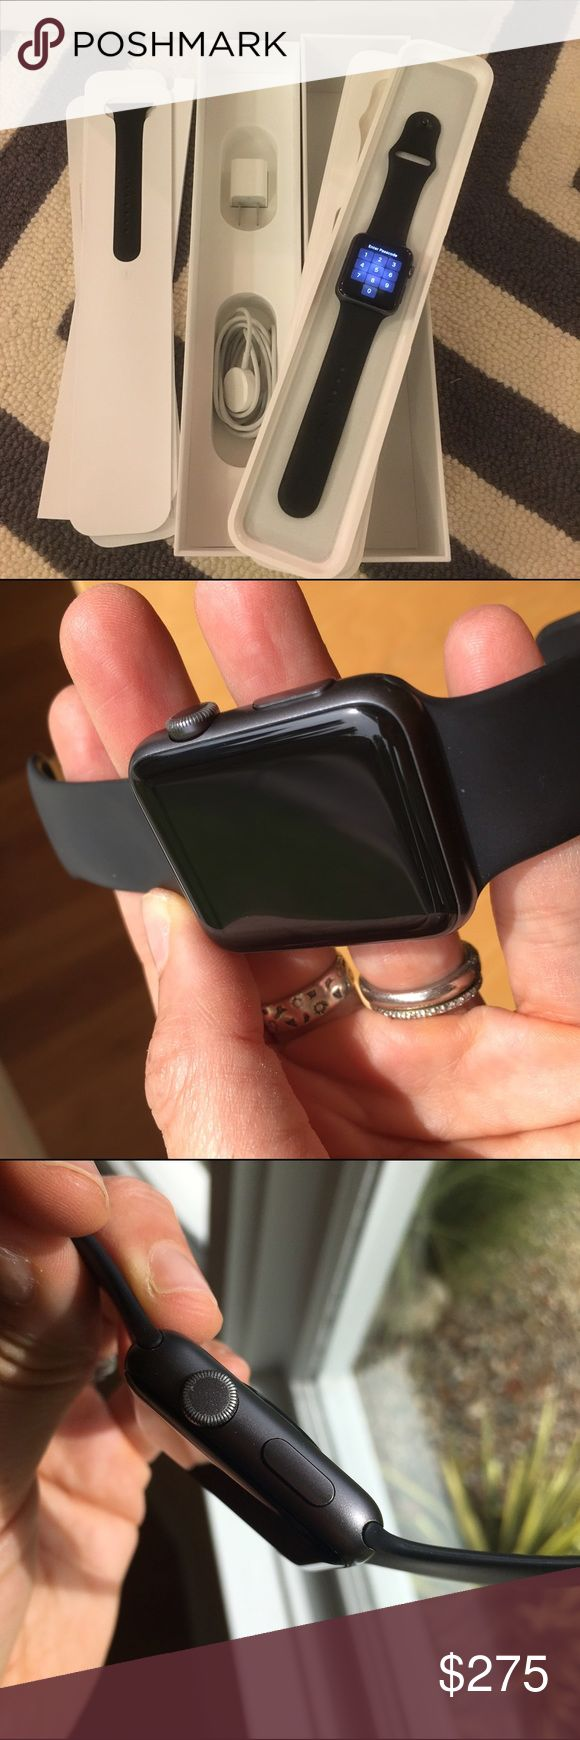 Apple Watch Sport 42mm Aluminum Space Grey ACare+ Great working condition. AppleCare+  til 8/10/17 & will be transferred 2u.  Black Sports band. Both lengths included. Charger, wall plug included w/ original box. Watch OS3. Data erased. Watch & band in great condition w/ some wear. Band has light marks. Metal looks good w/ few areas of abrasion on sides. Small ding near one of the connectors. Digital crown smooth. Screen has faint surface scratches that can't be felt & can only be seen…